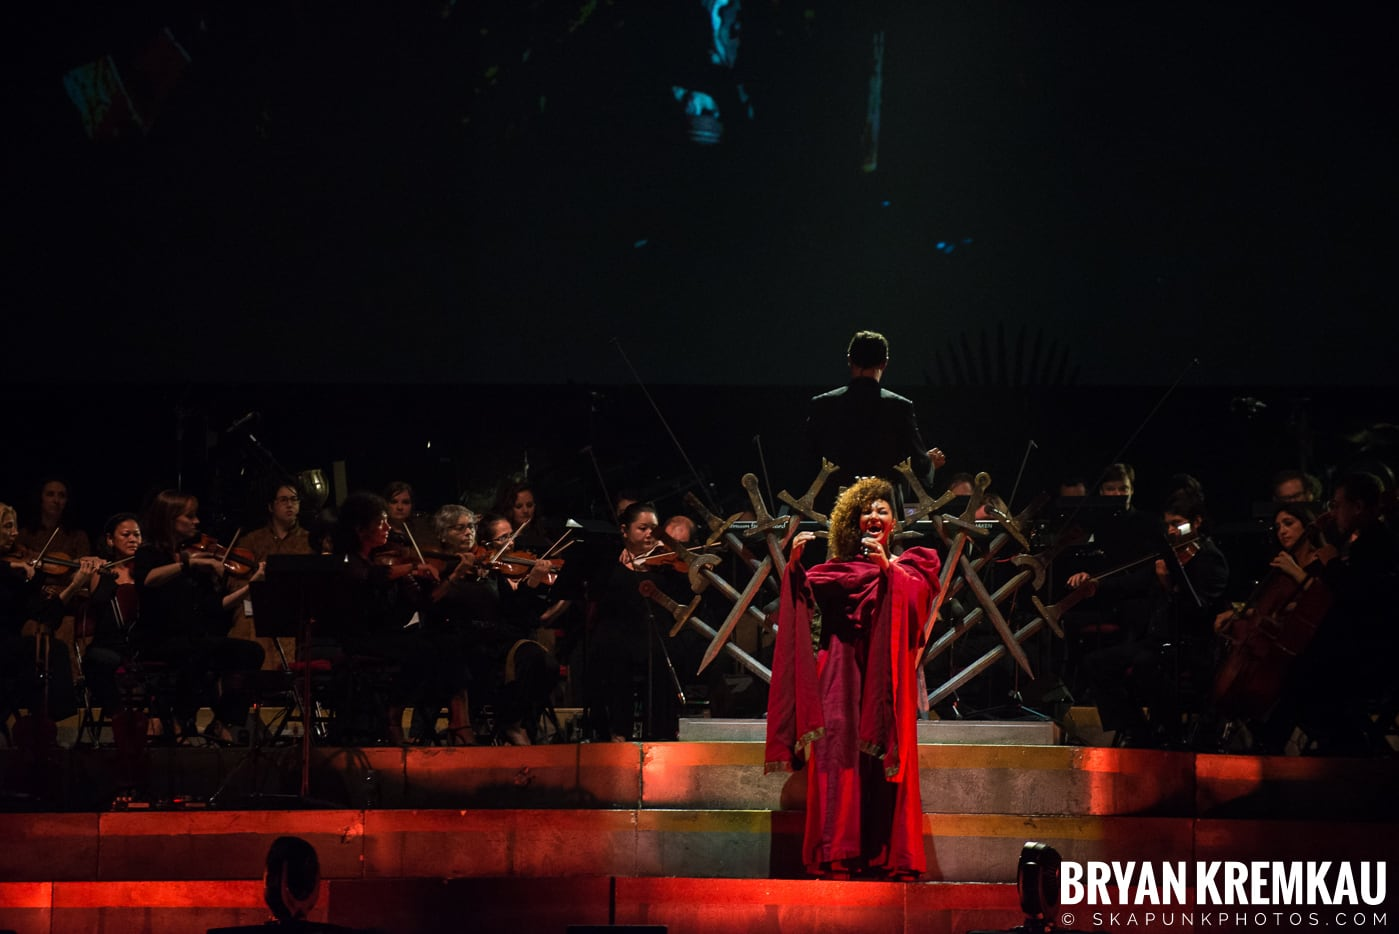 Game of Thrones Live Experience @ Prudential Center, Newark, NJ - 9.26.18 (5)